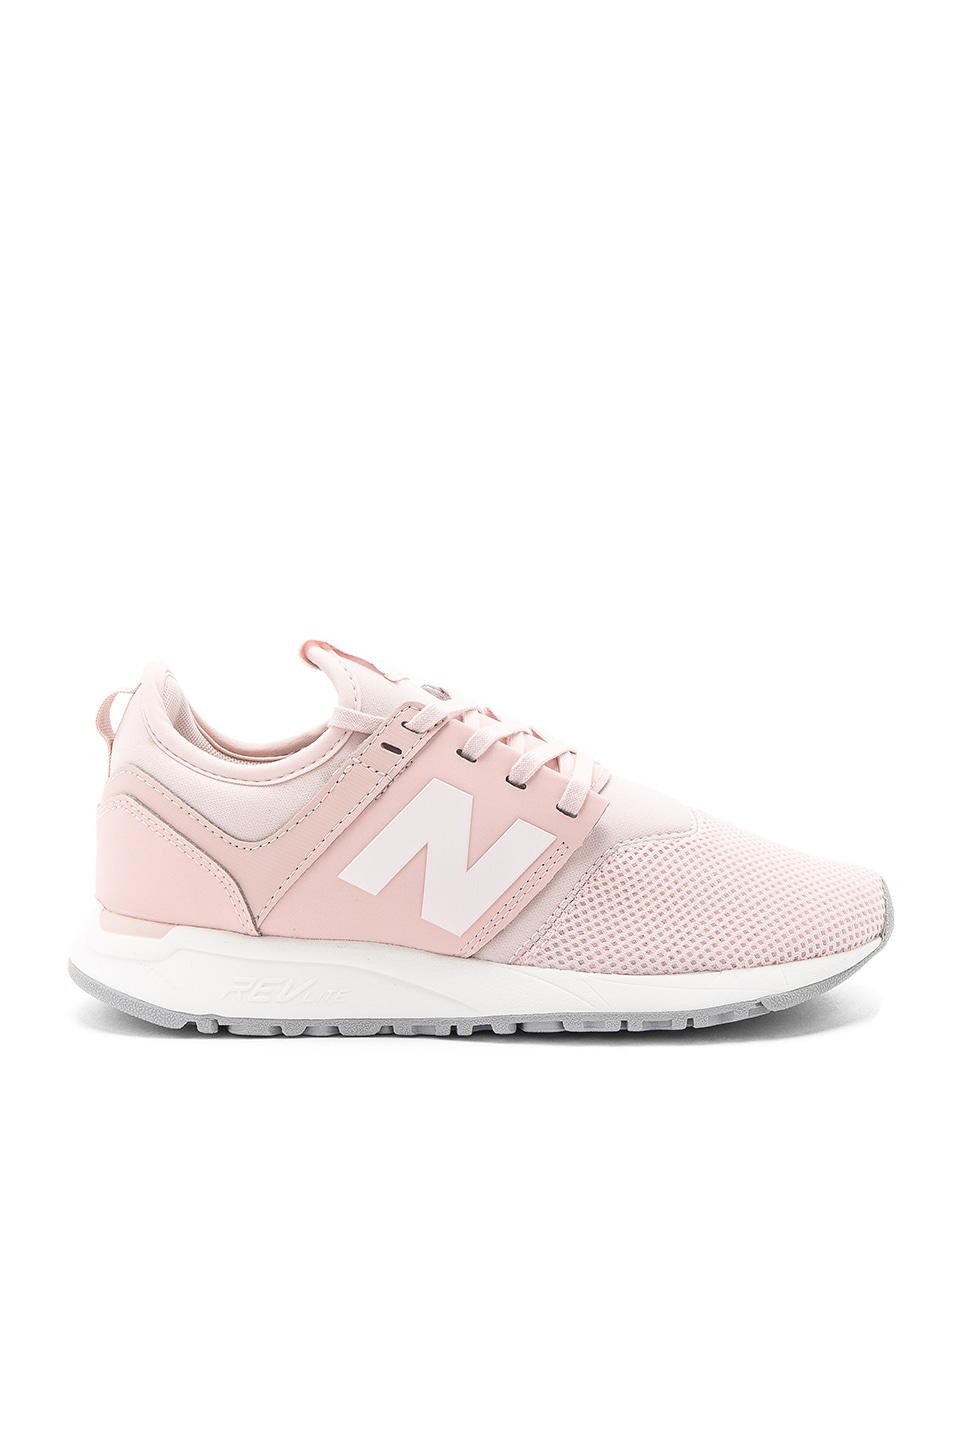 new balance 247 sneaker in pink sandstone white revolve. Black Bedroom Furniture Sets. Home Design Ideas